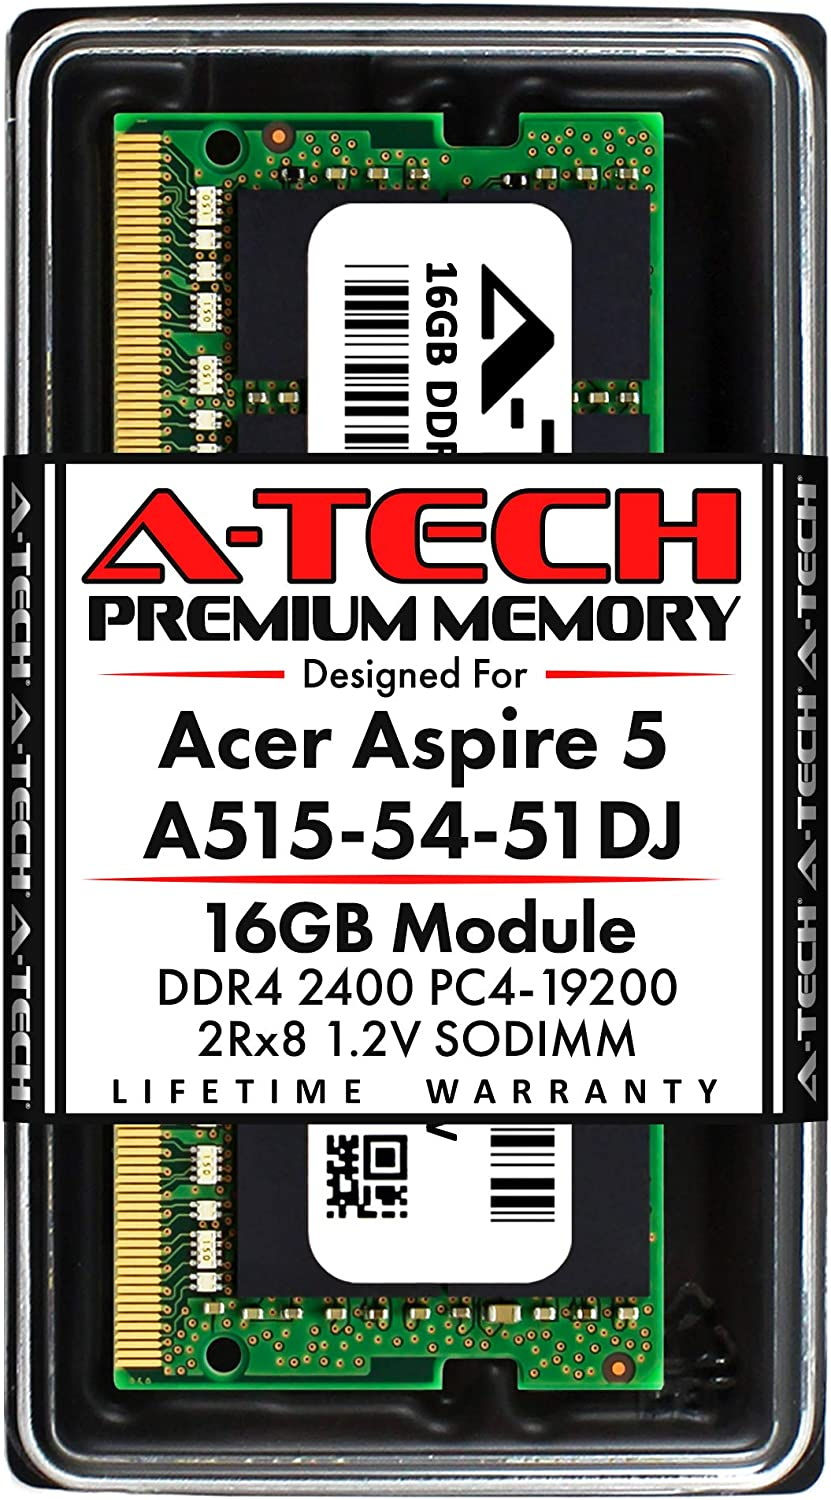 A-Tech 16GB RAM for Acer Aspire 5 Slim Laptop A515-54-51DJ | DDR4 2400MHz SODIMM PC4-19200 260-Pin CL17 1.2V Non-ECC Unbuffered Memory Upgrade Module